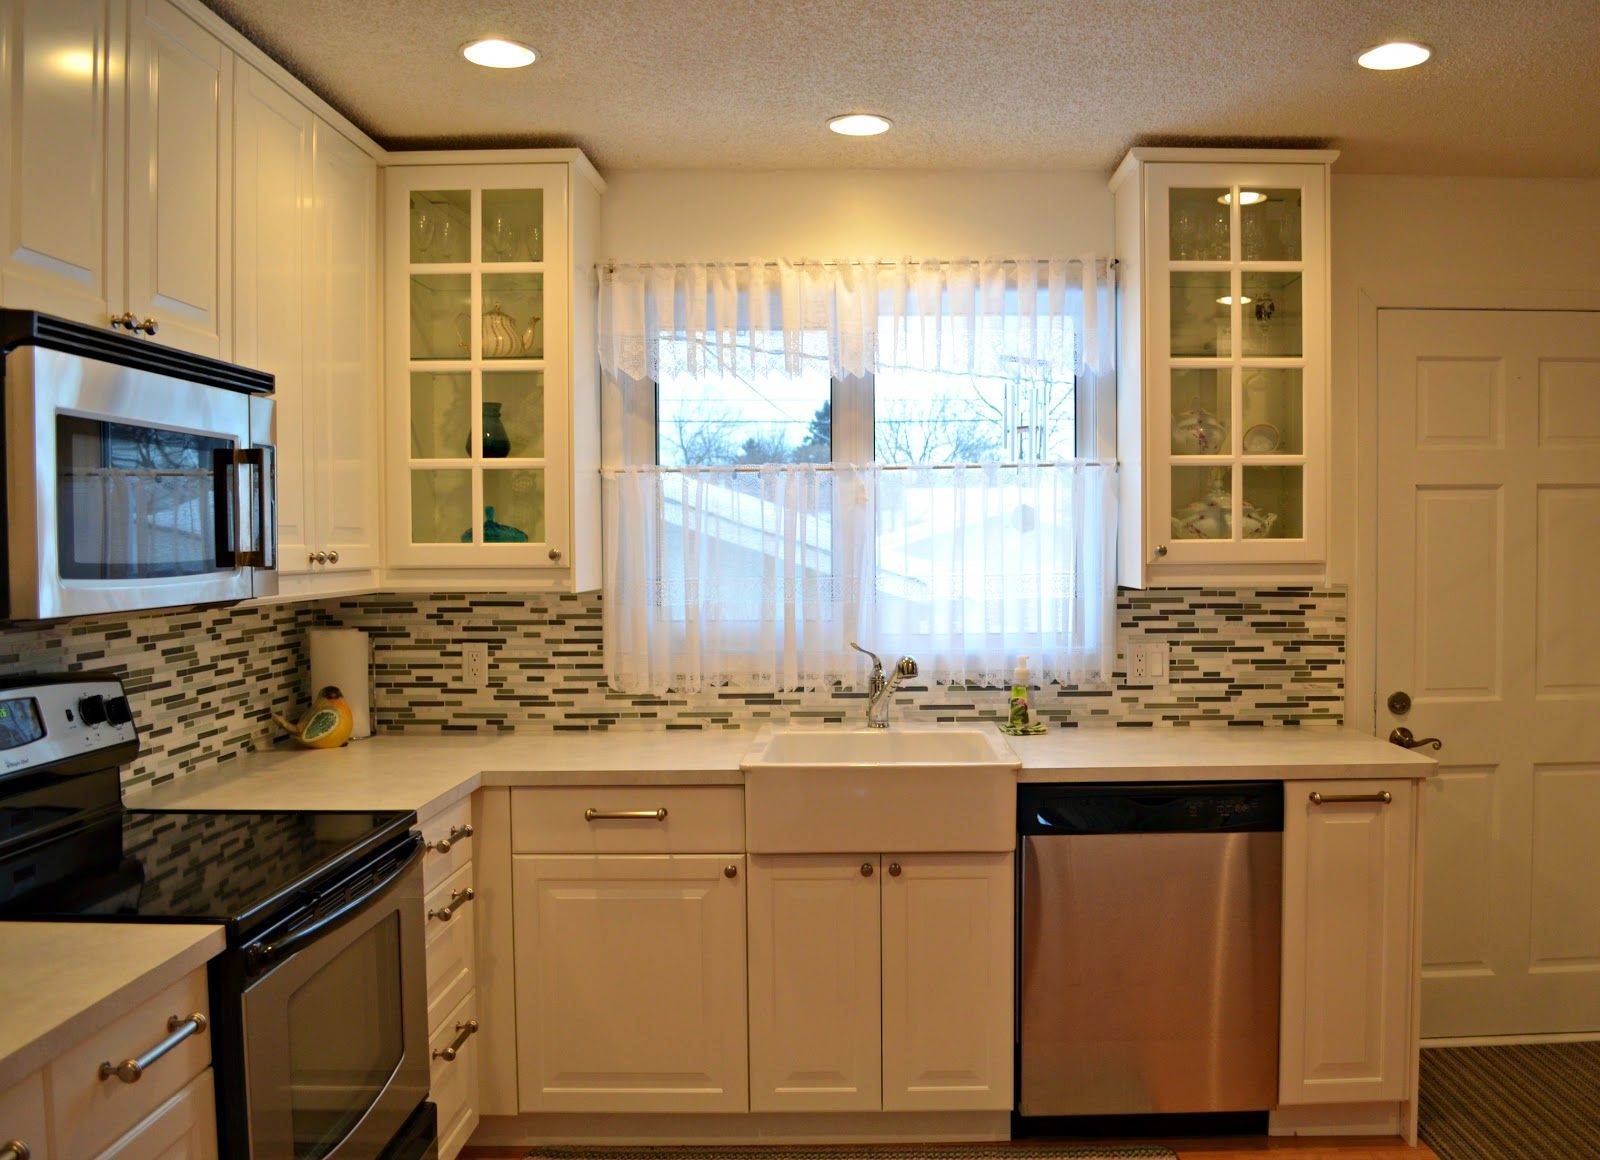 Lidingo Kitchen After Some Careful Planning And Lidingo Cabinetry And Fintorp Handles Cool Kitchens Kitchen Decor Kitchen